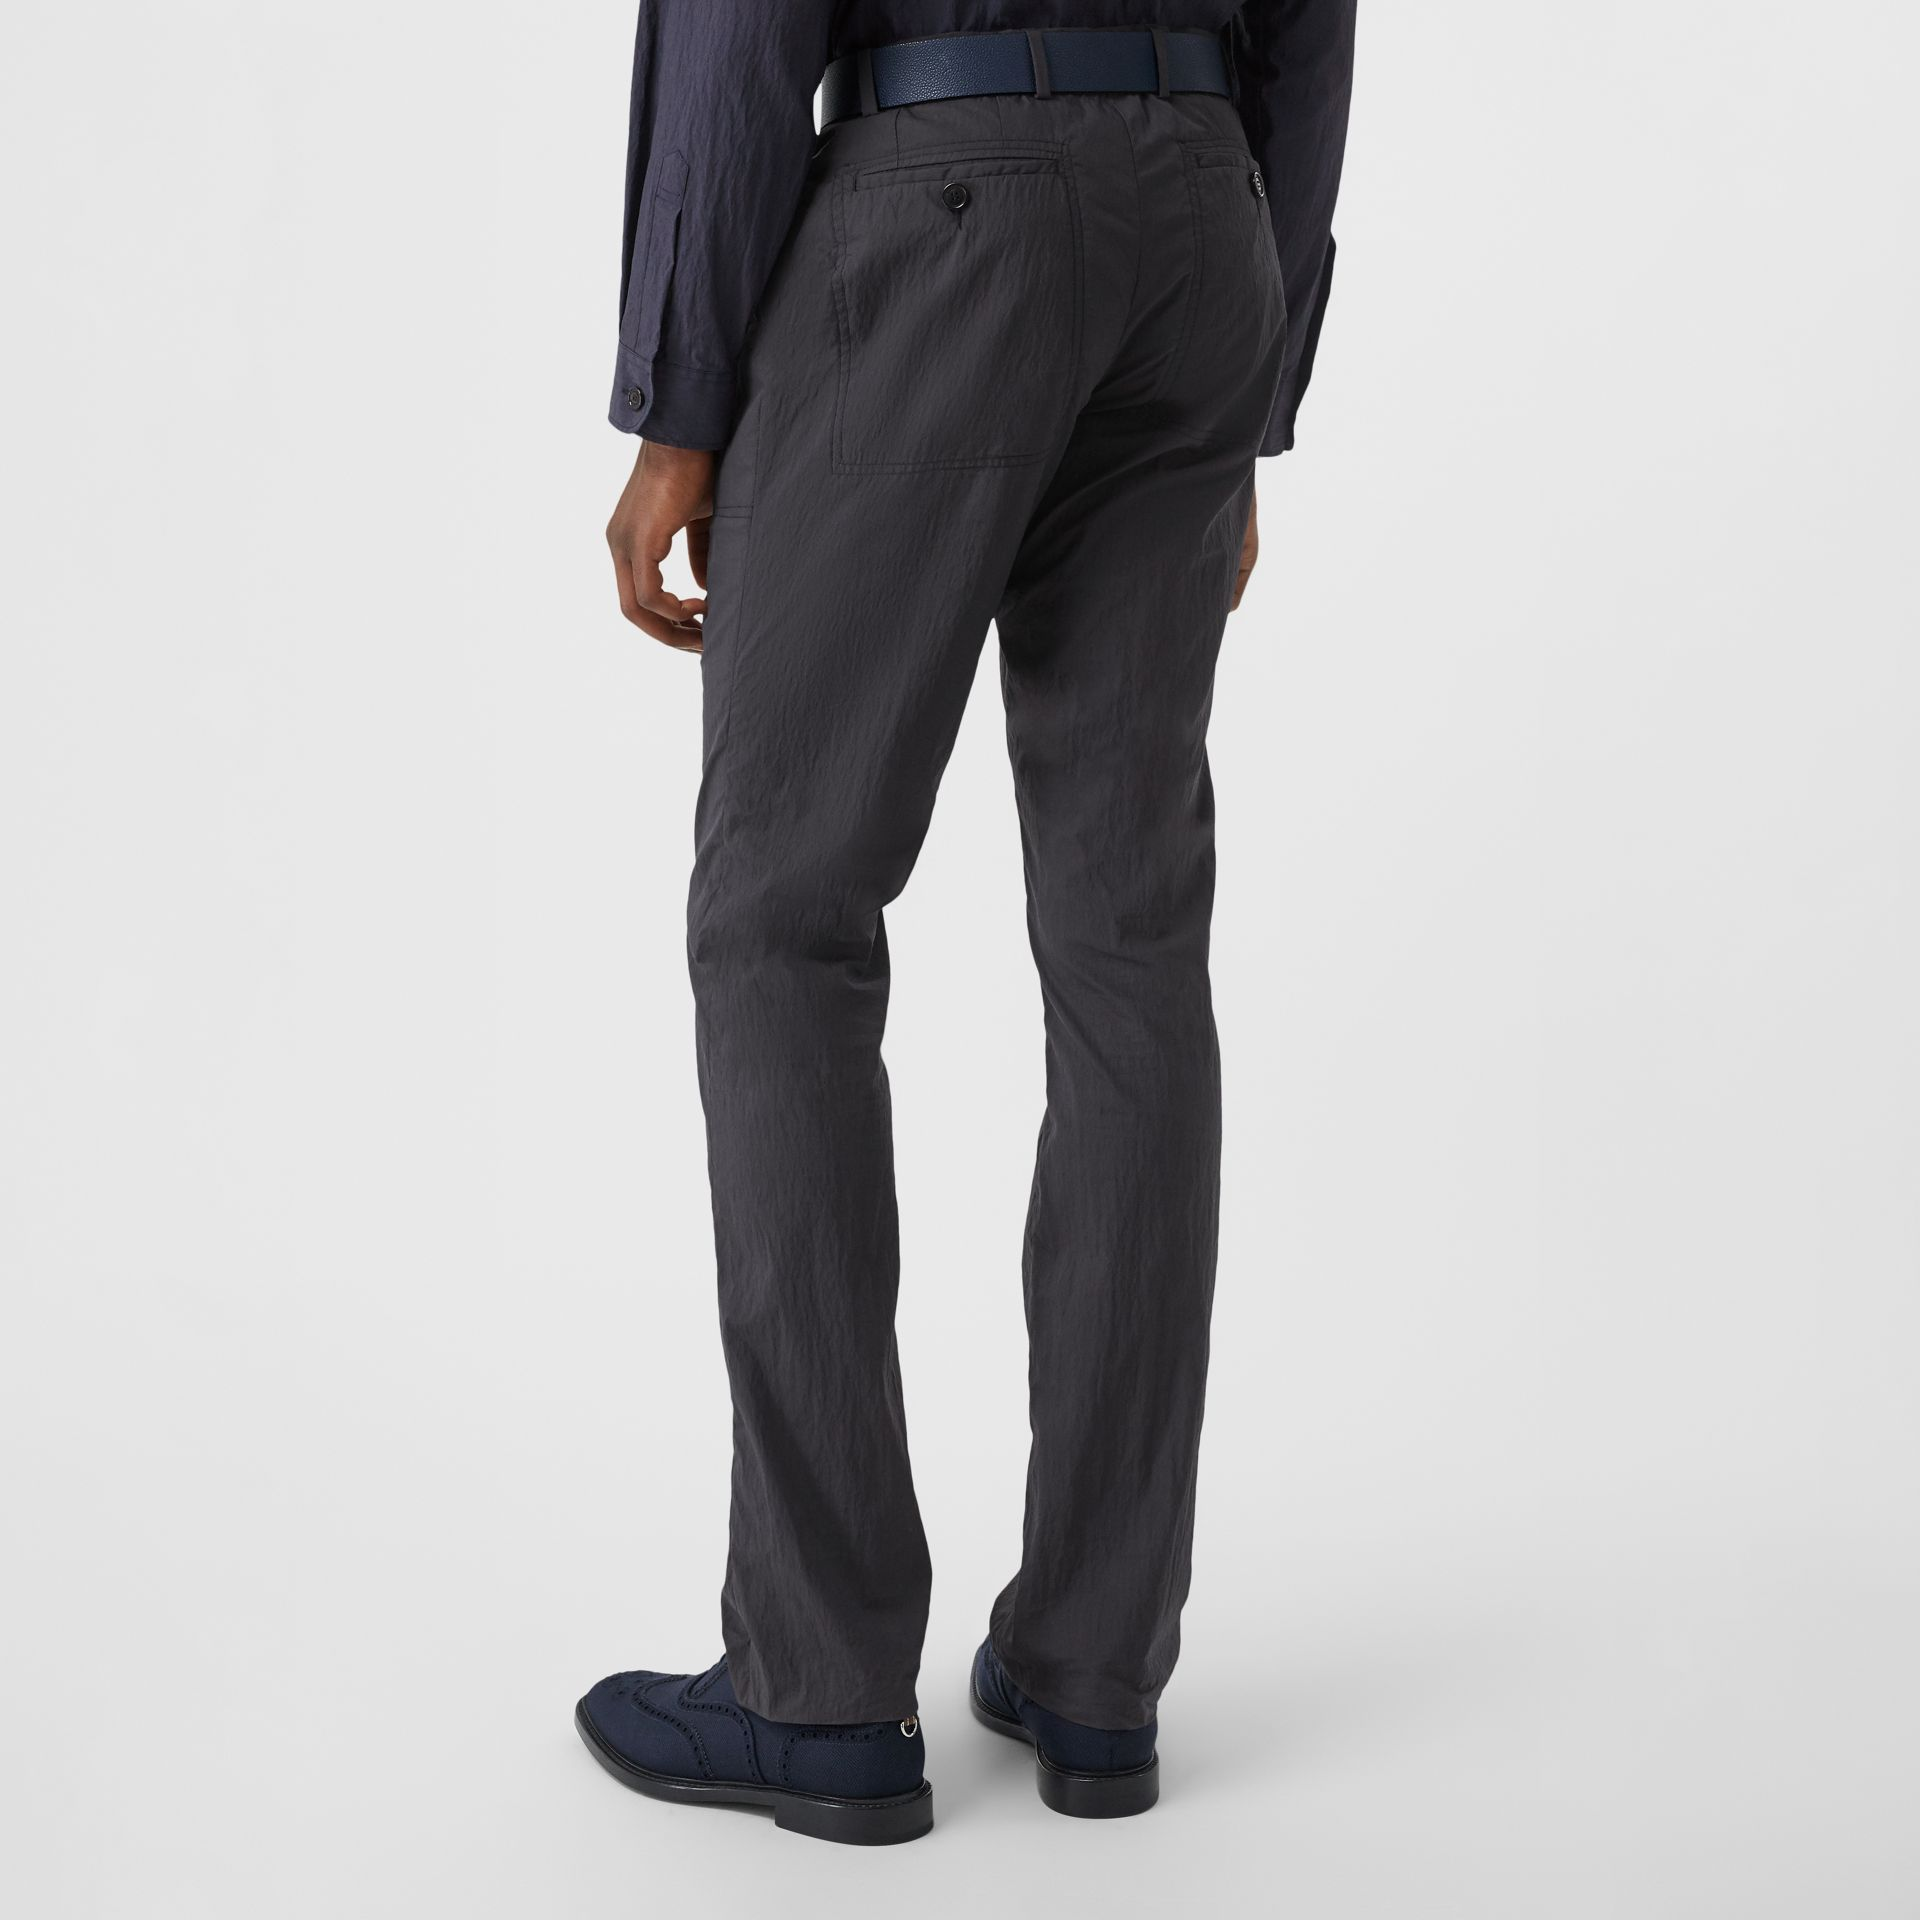 Classic Fit Cotton Blend Tailored Trousers in Navy - Men | Burberry Canada - gallery image 2